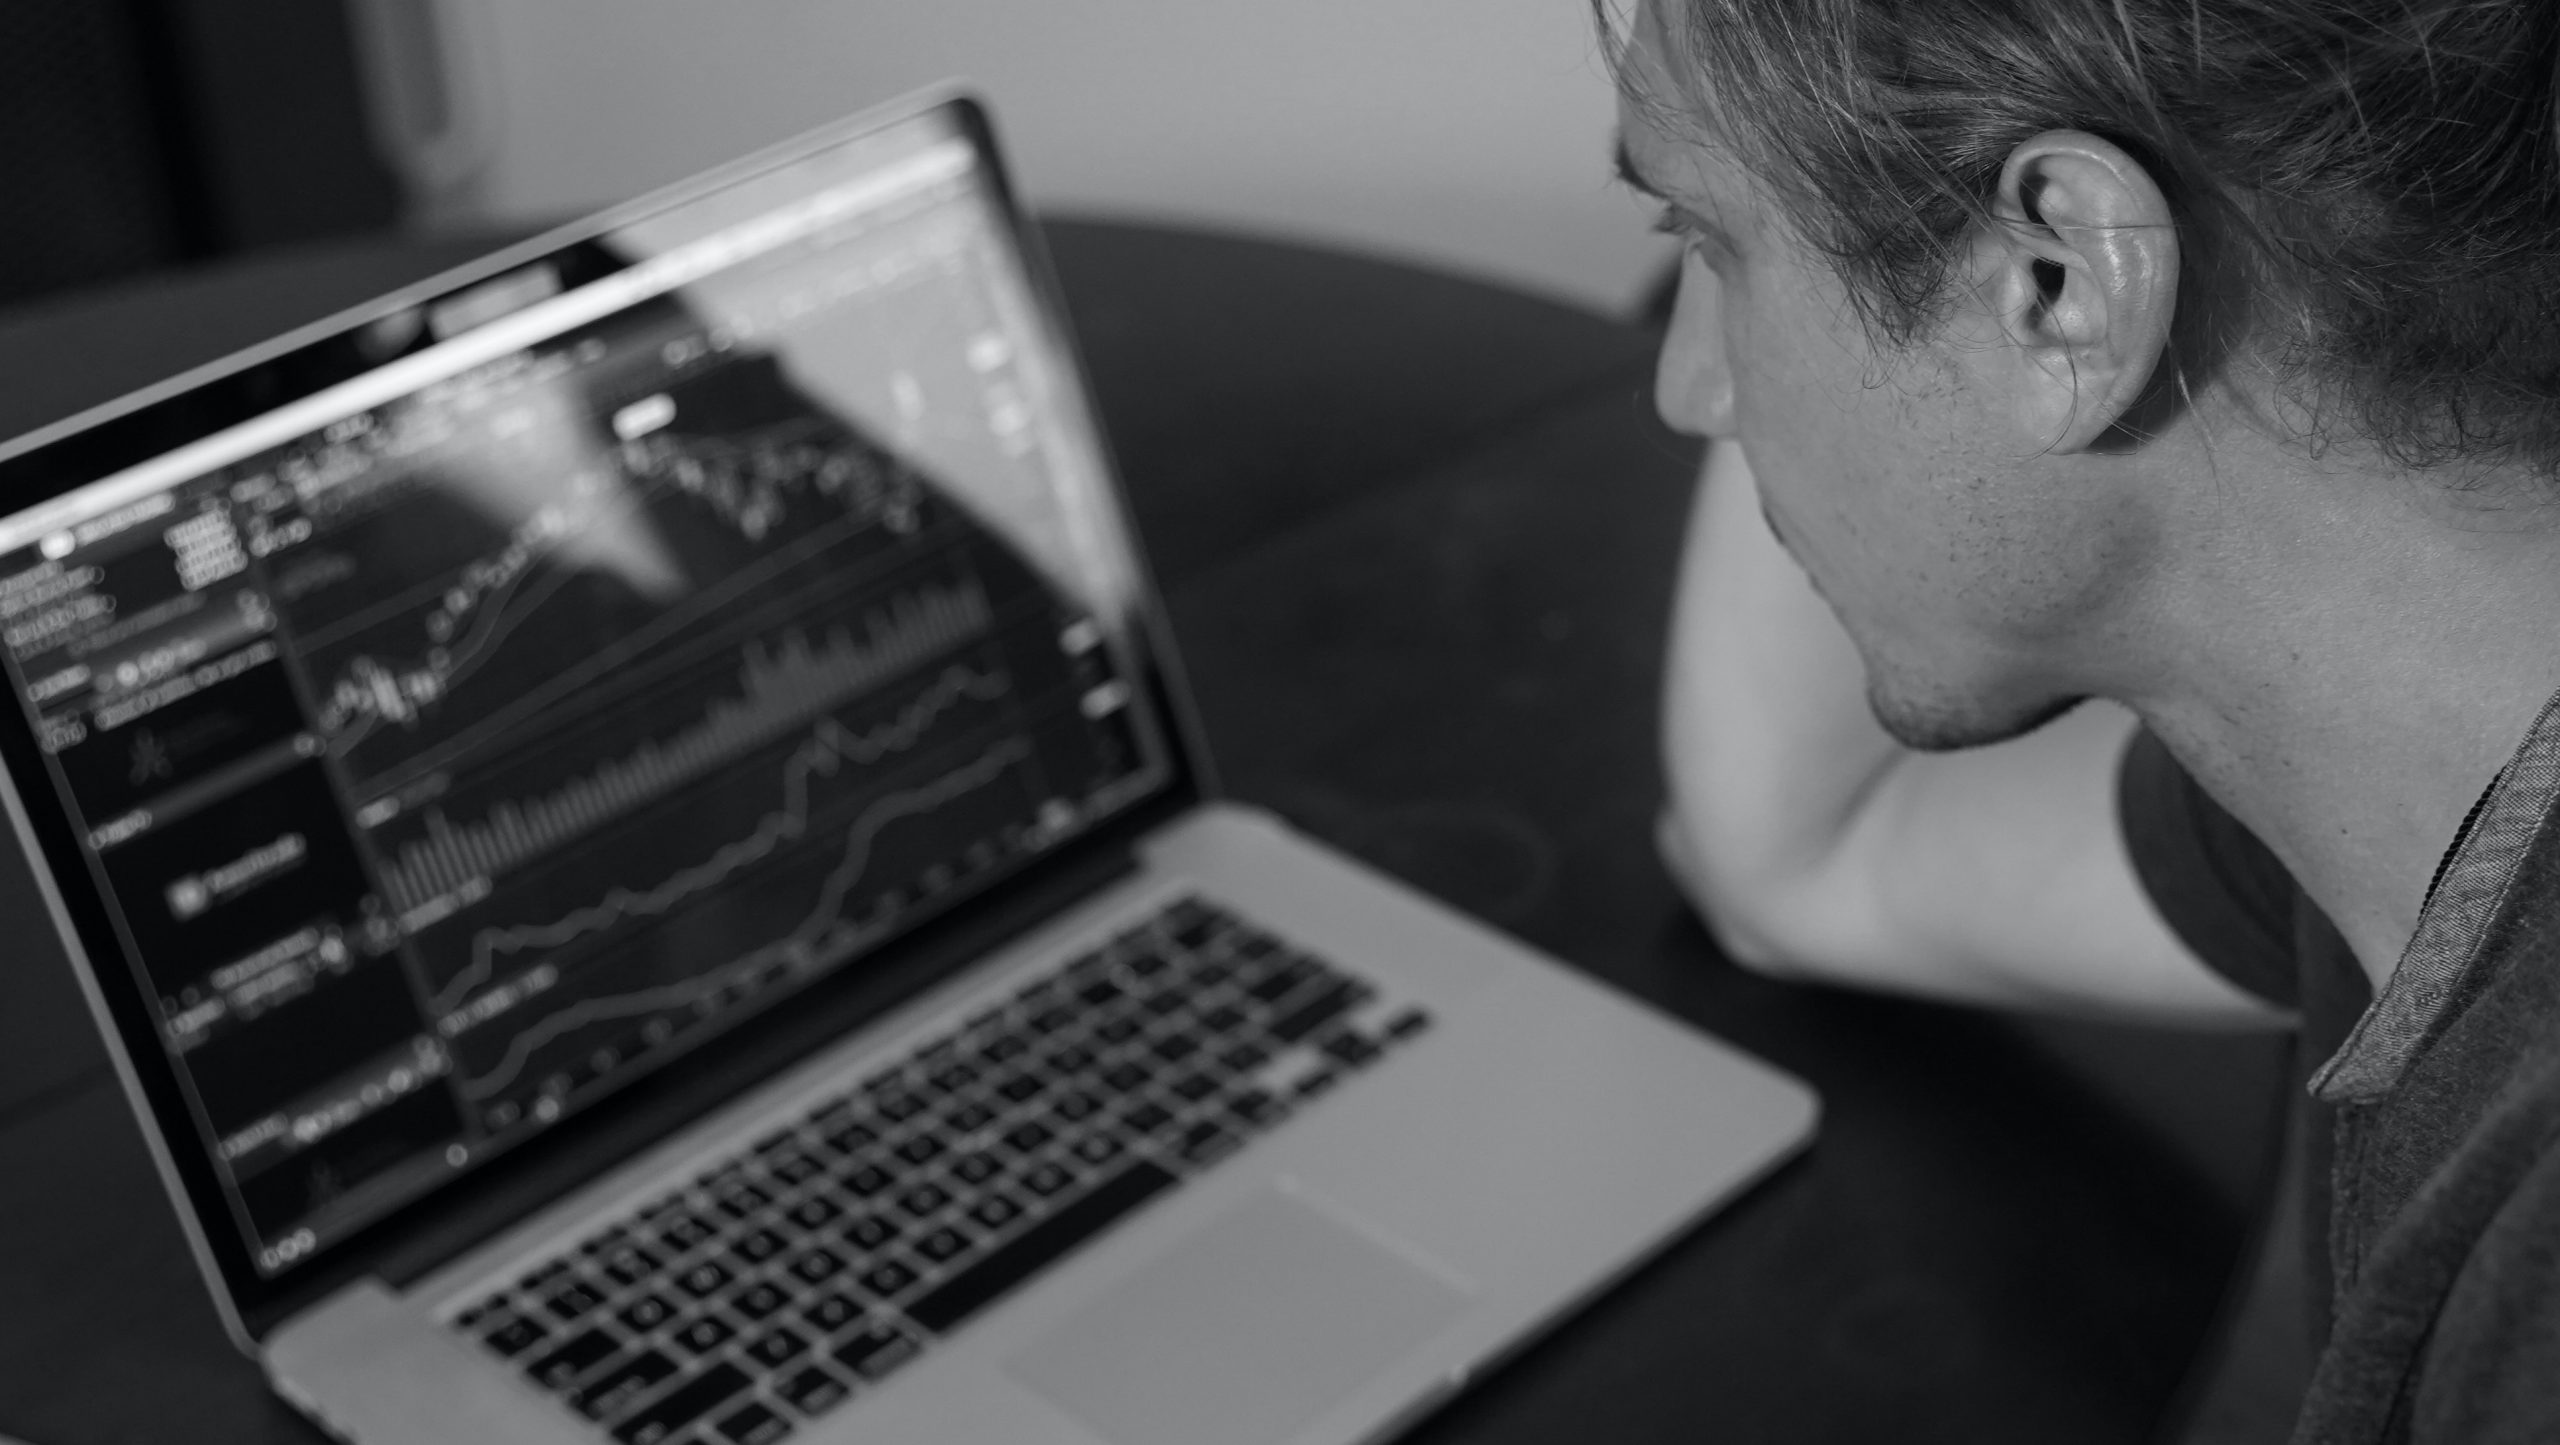 Focused on the price charts